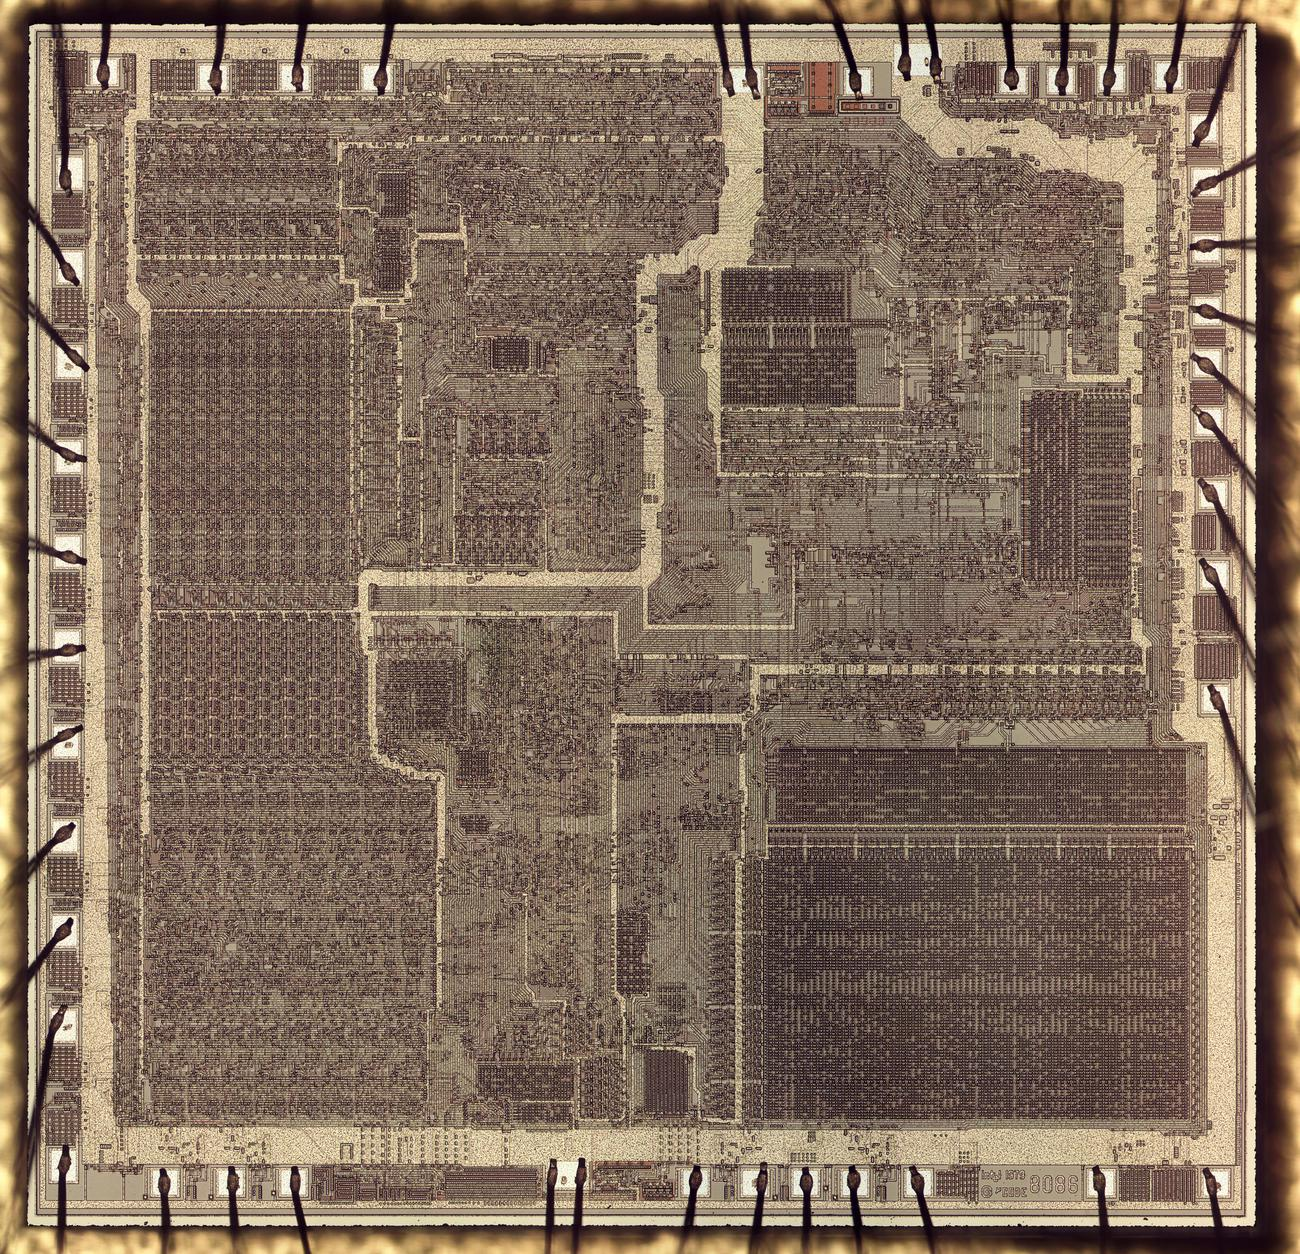 Die photo of the 8086 microprocessor. The ALU and registers are on the left. The microcode ROM is in the lower right. Click for a high-resolution image.